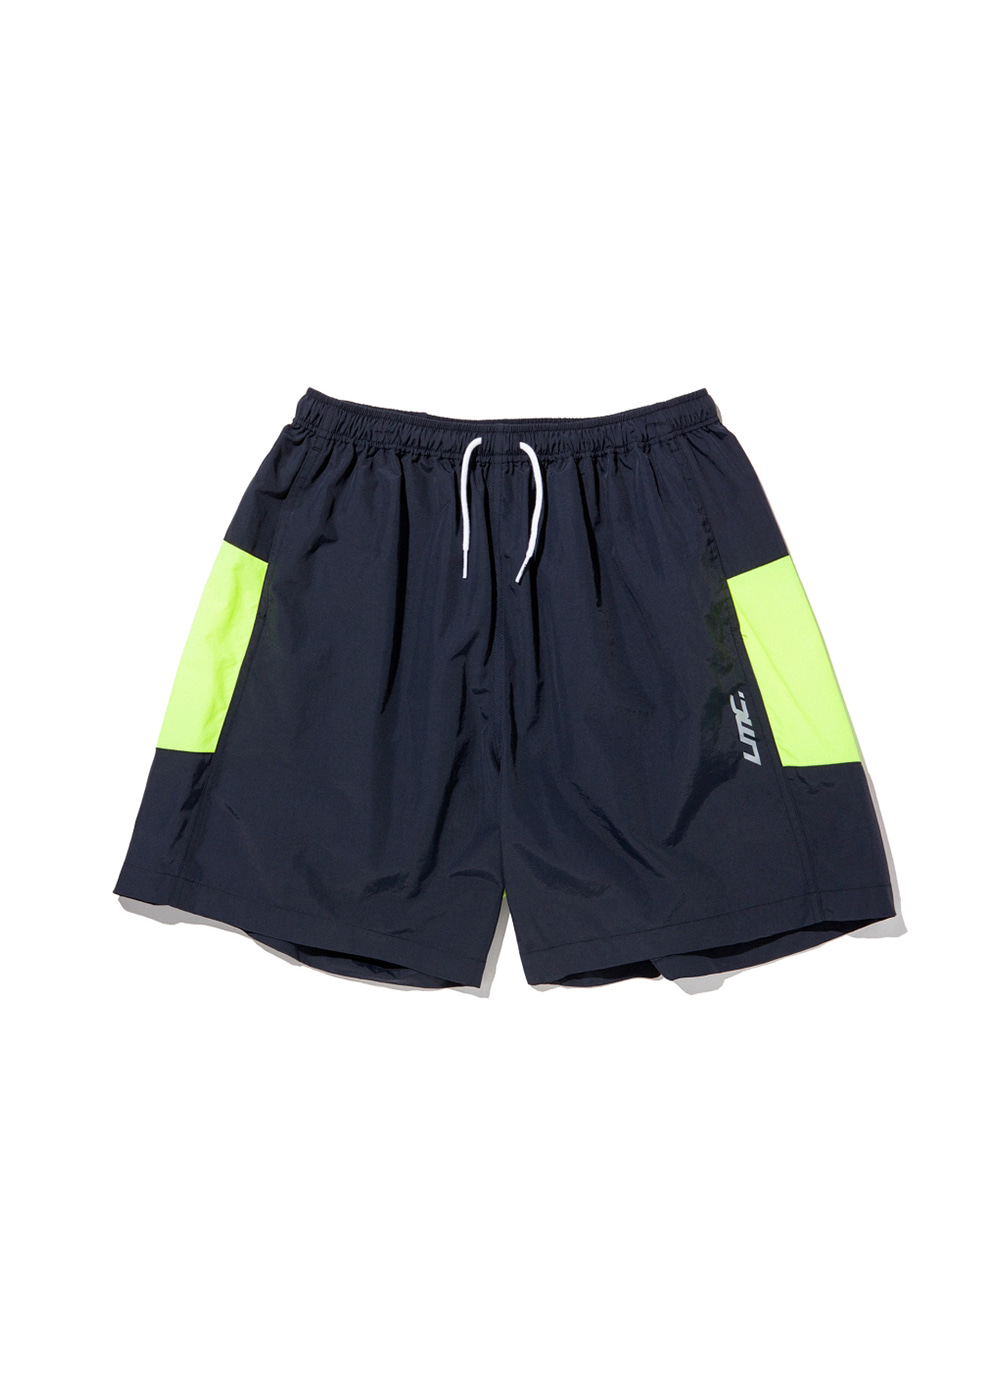 LMC ZIPPER LEF TRACK SUIT SHORTS navy